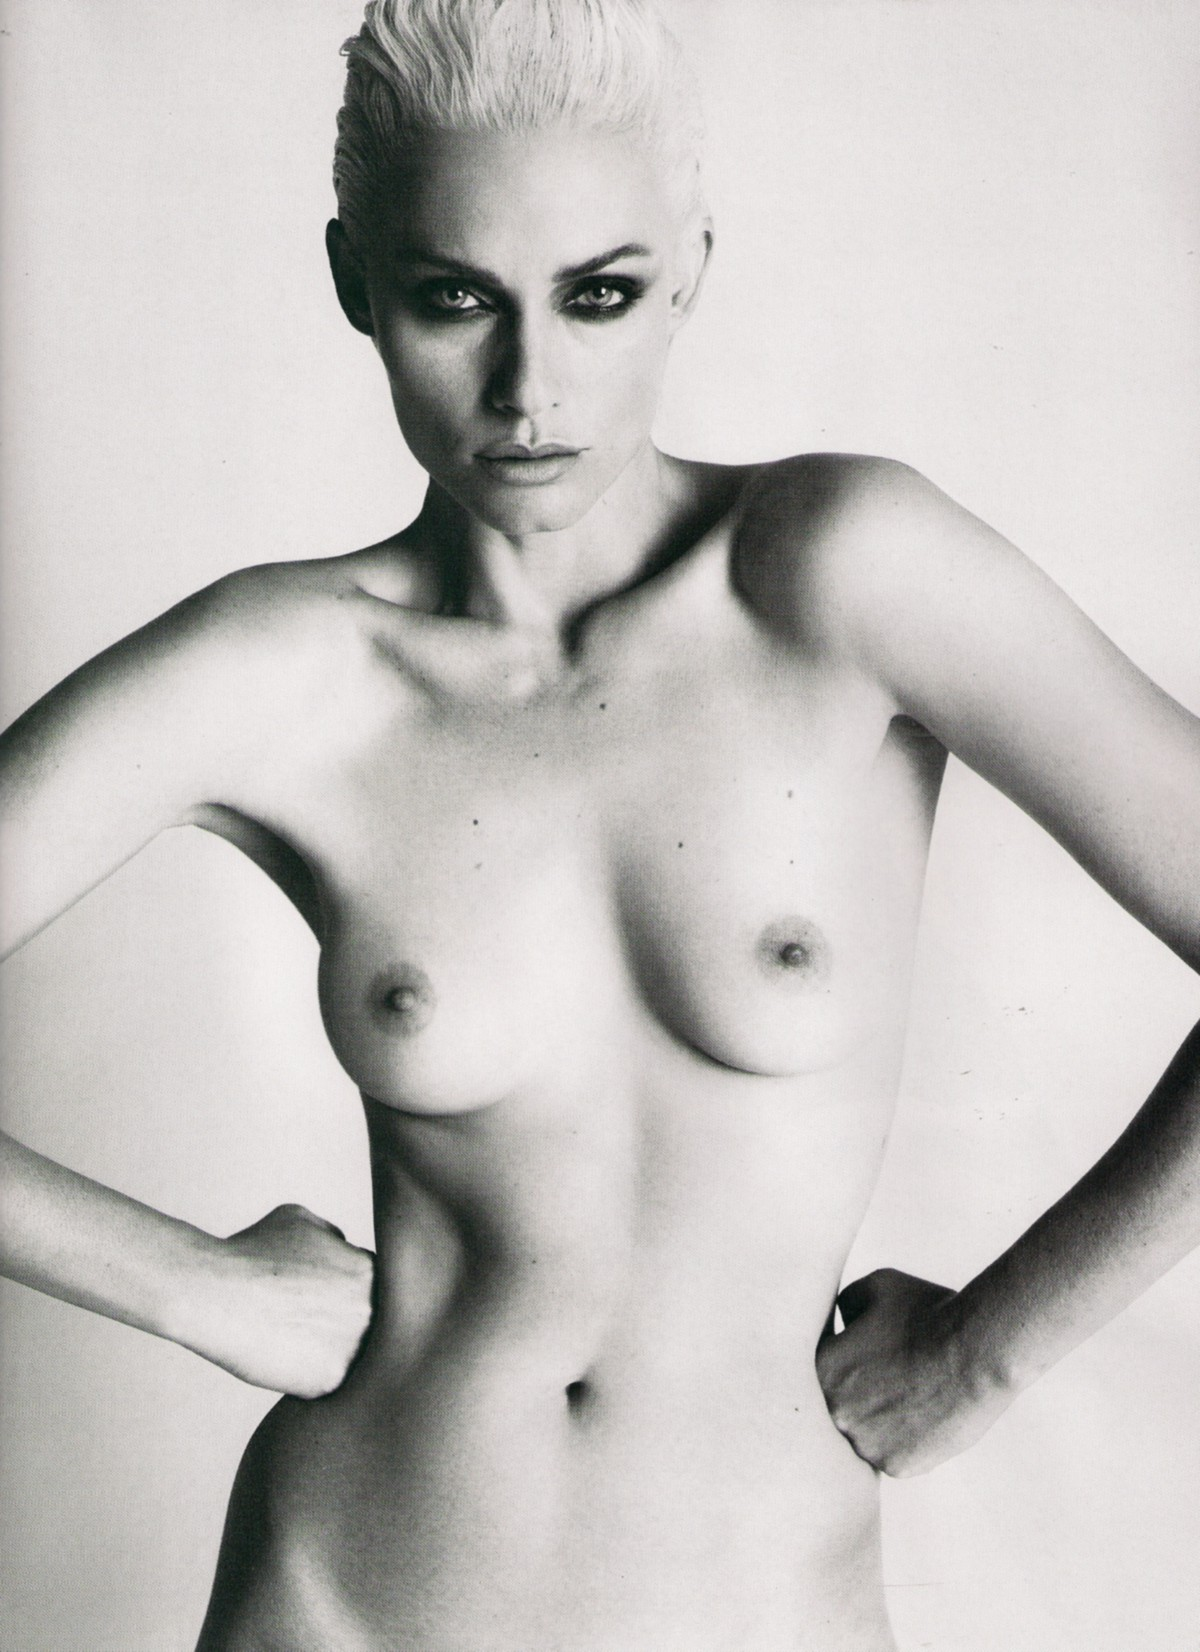 Amber valletta nude suggest you